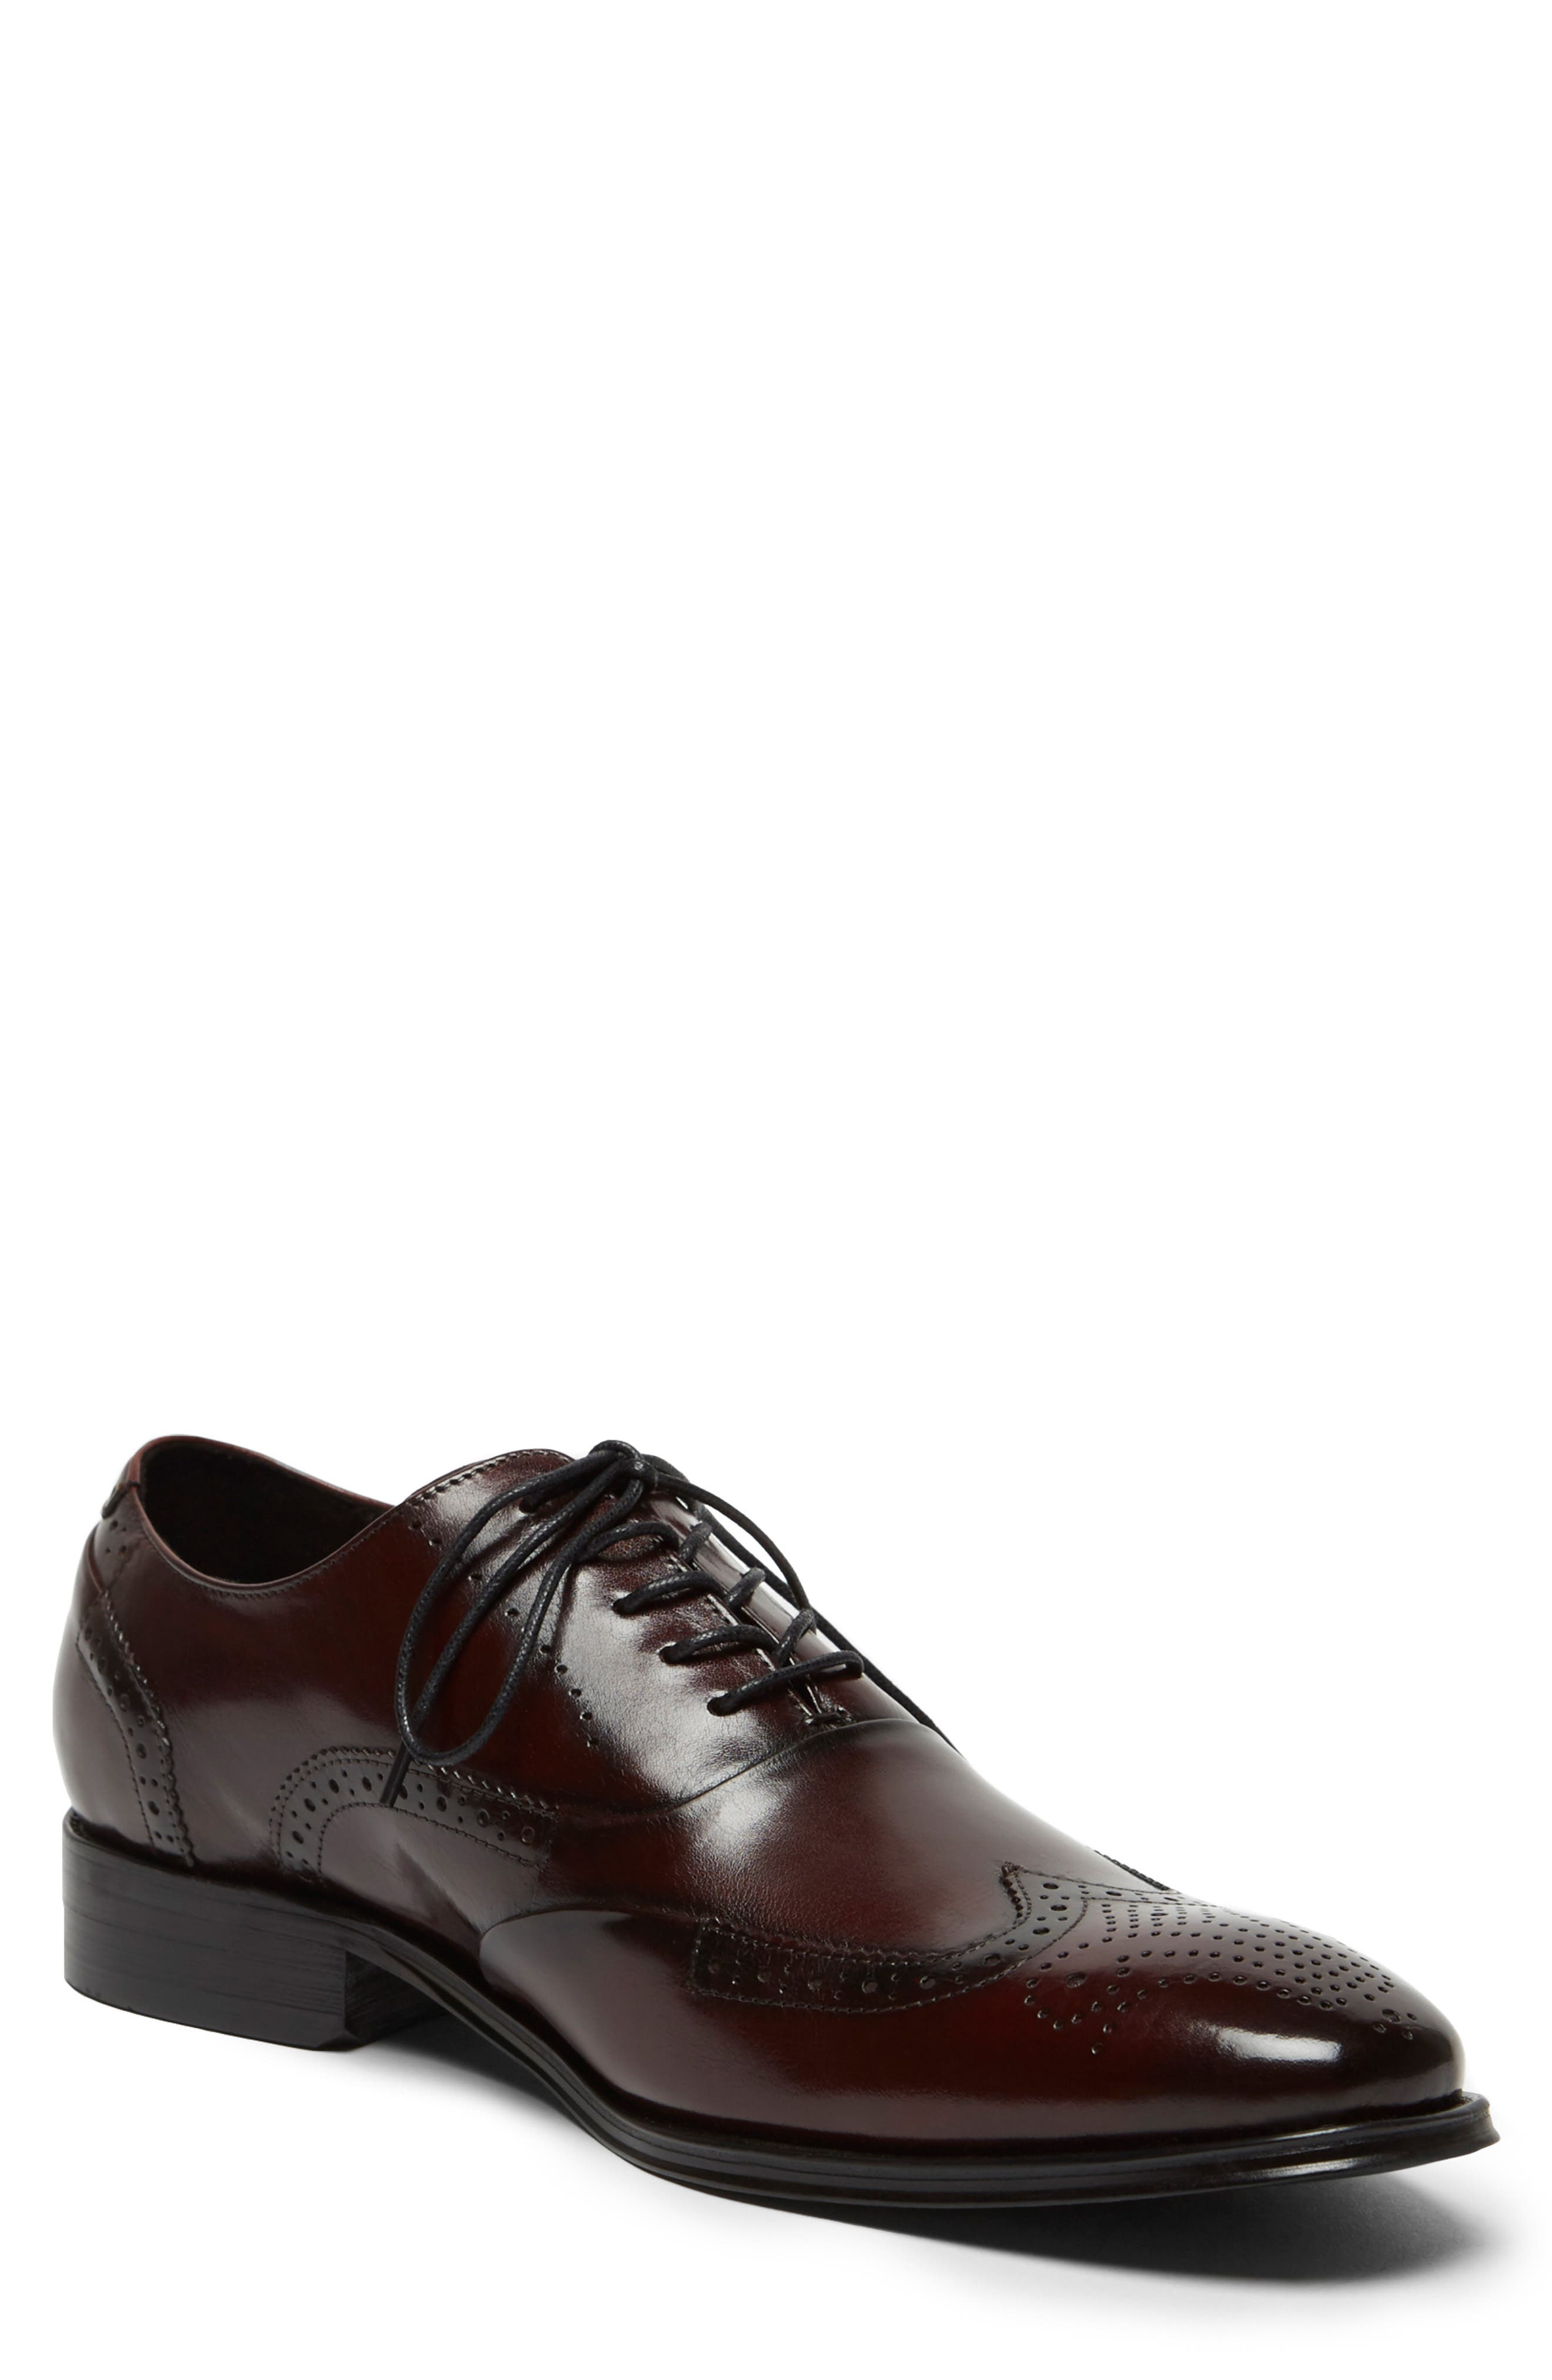 KENNETH COLE NEW YORK Brant Wingtip, Main, color, BORDEAUX LEATHER